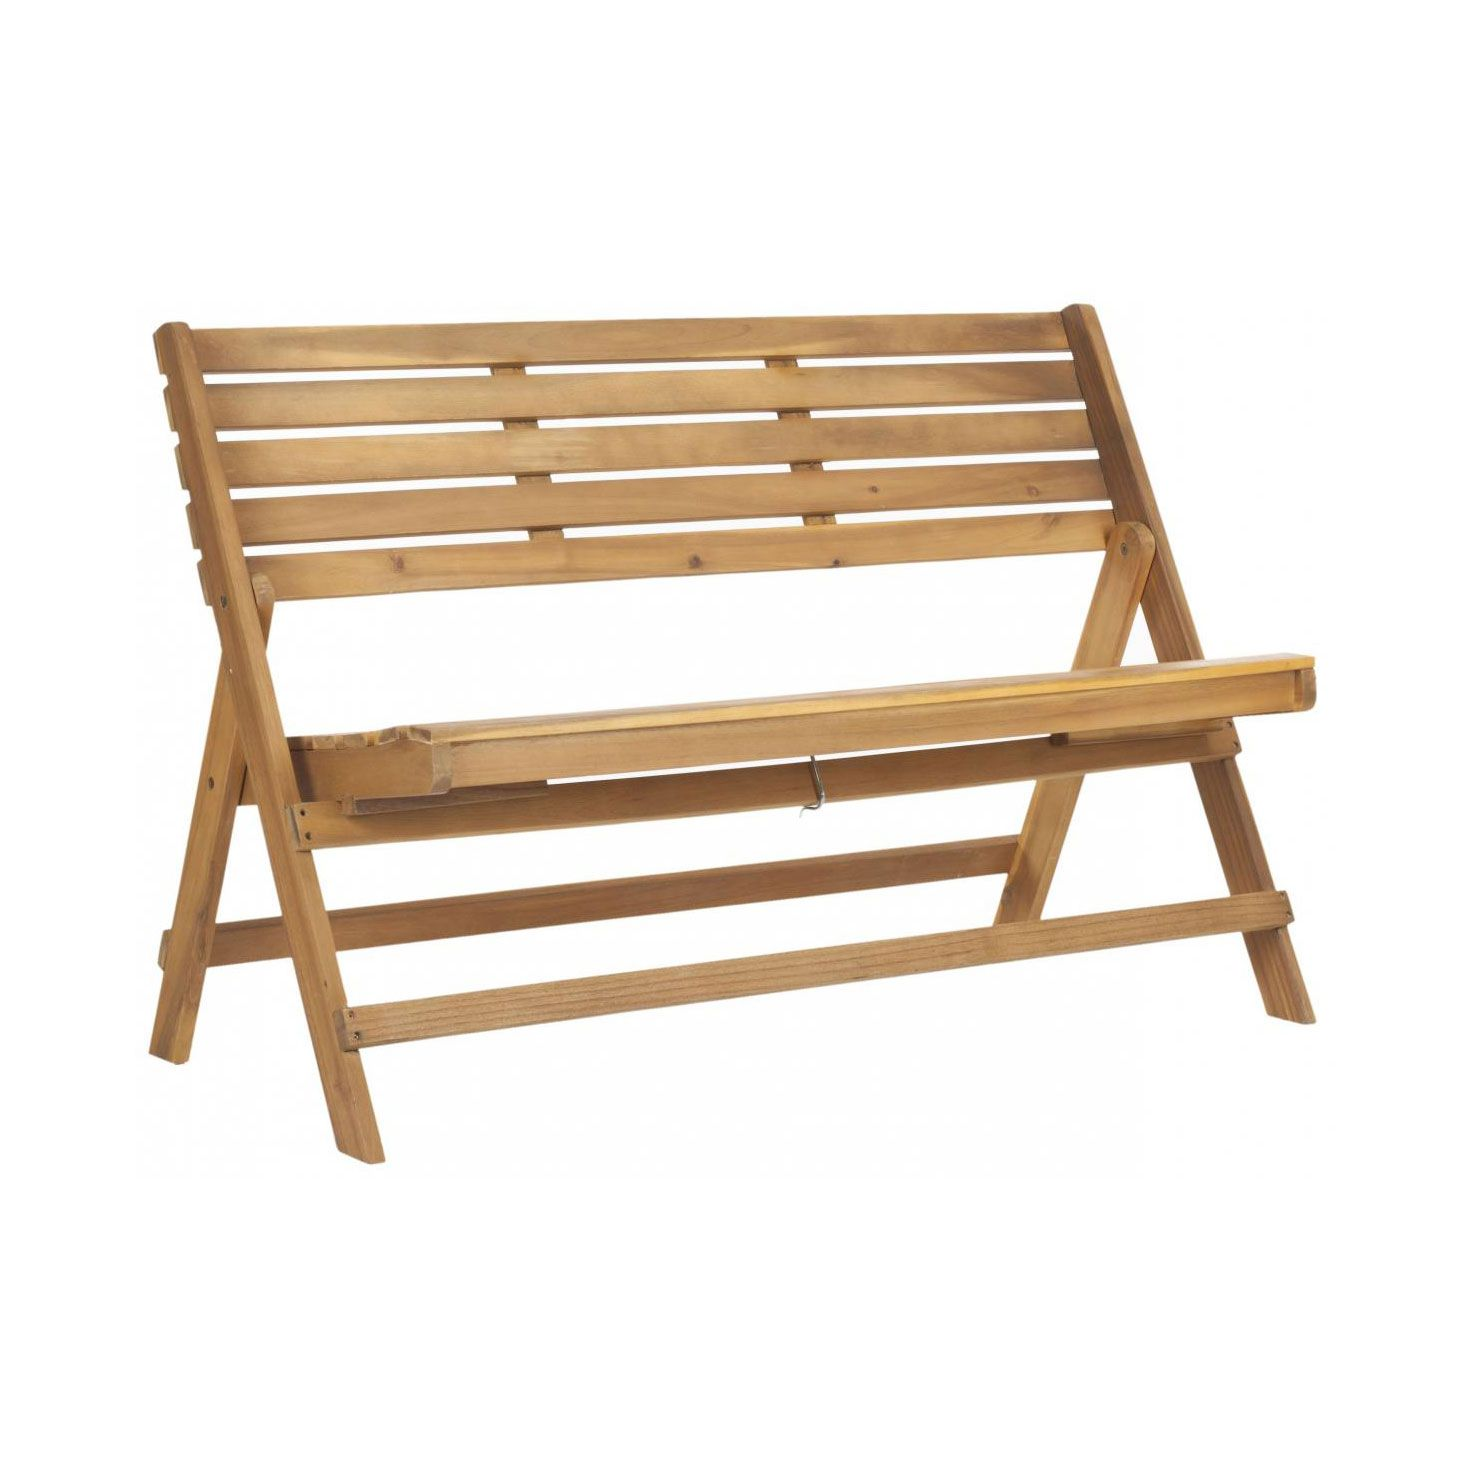 Parker Folding Bench - perfect for tiny house people! | Tiny houses ...